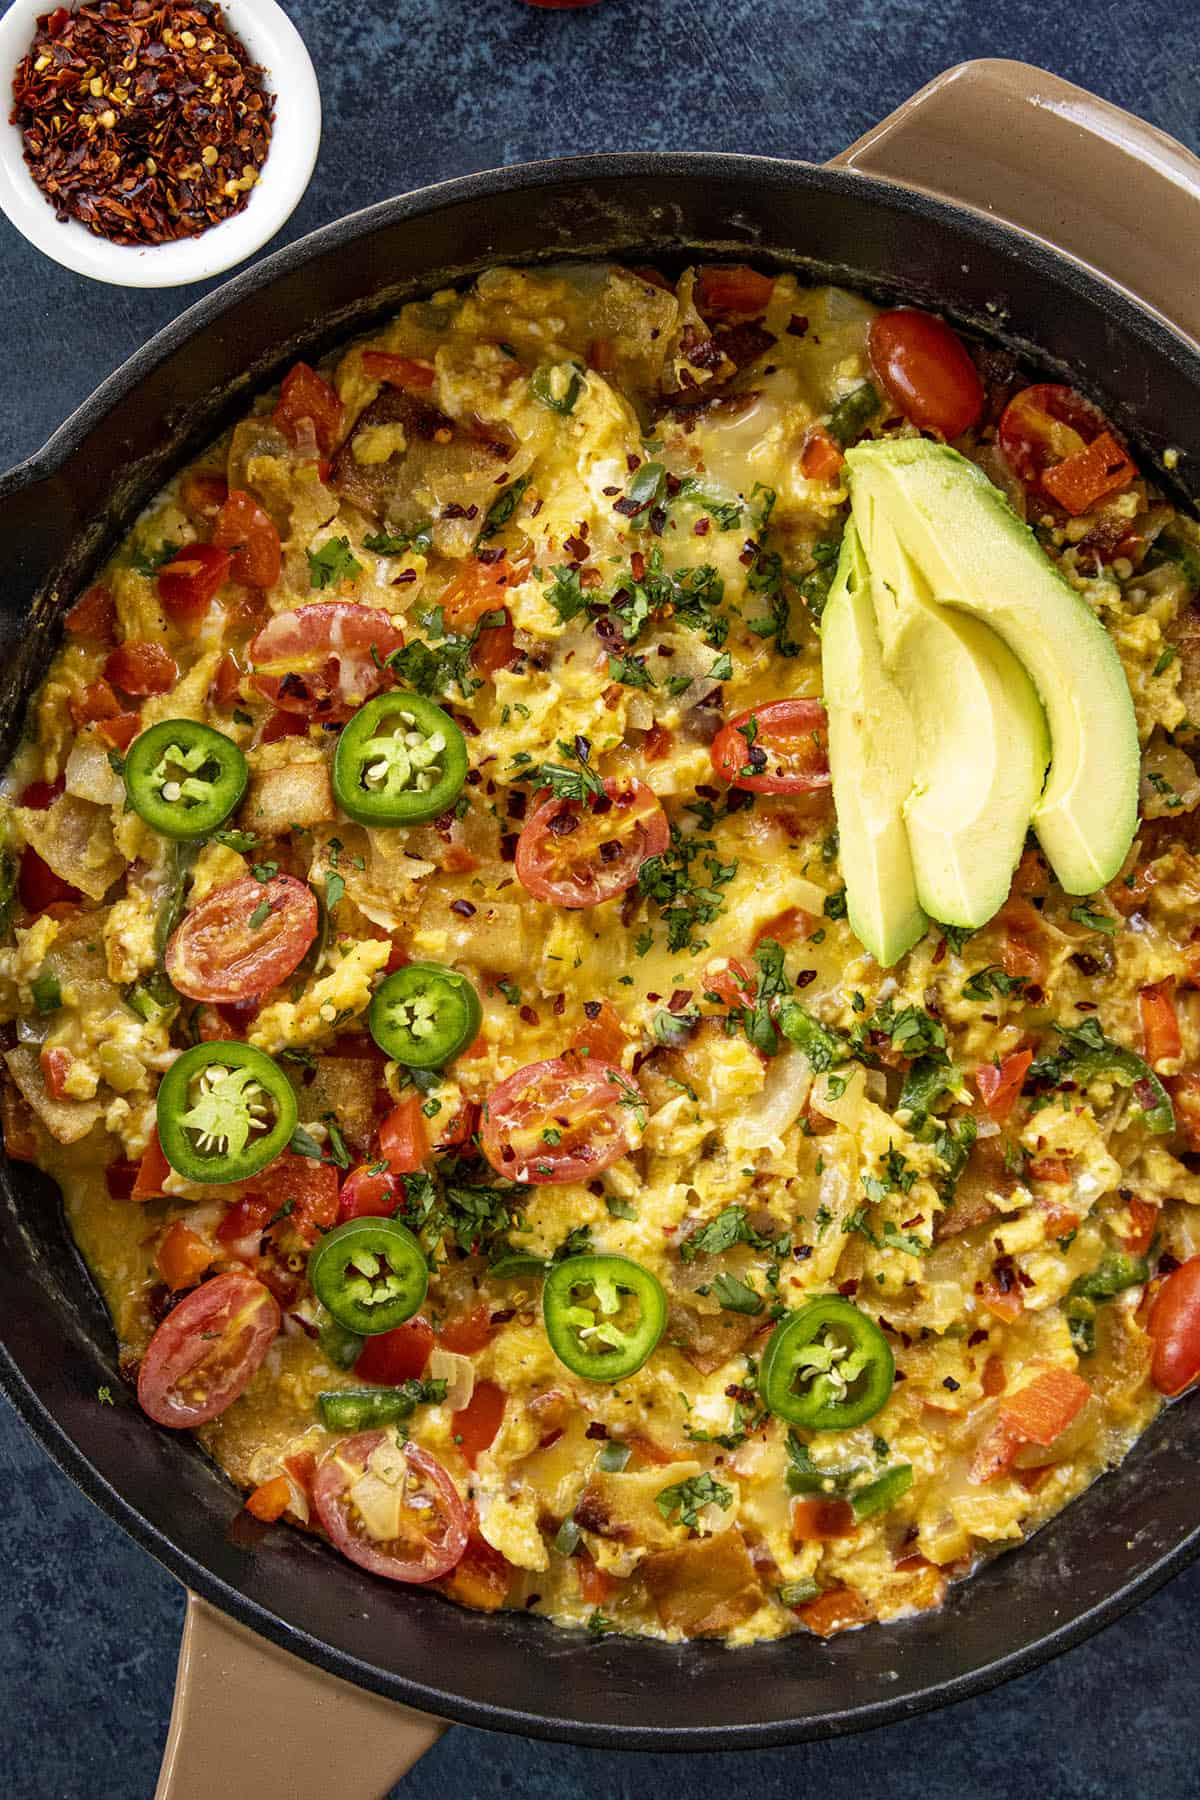 A big pan of Migas (Easy Mexican Scrambled Eggs with Crispy Tortillas), with avocado slices, sliced peppers, tomatoes and more